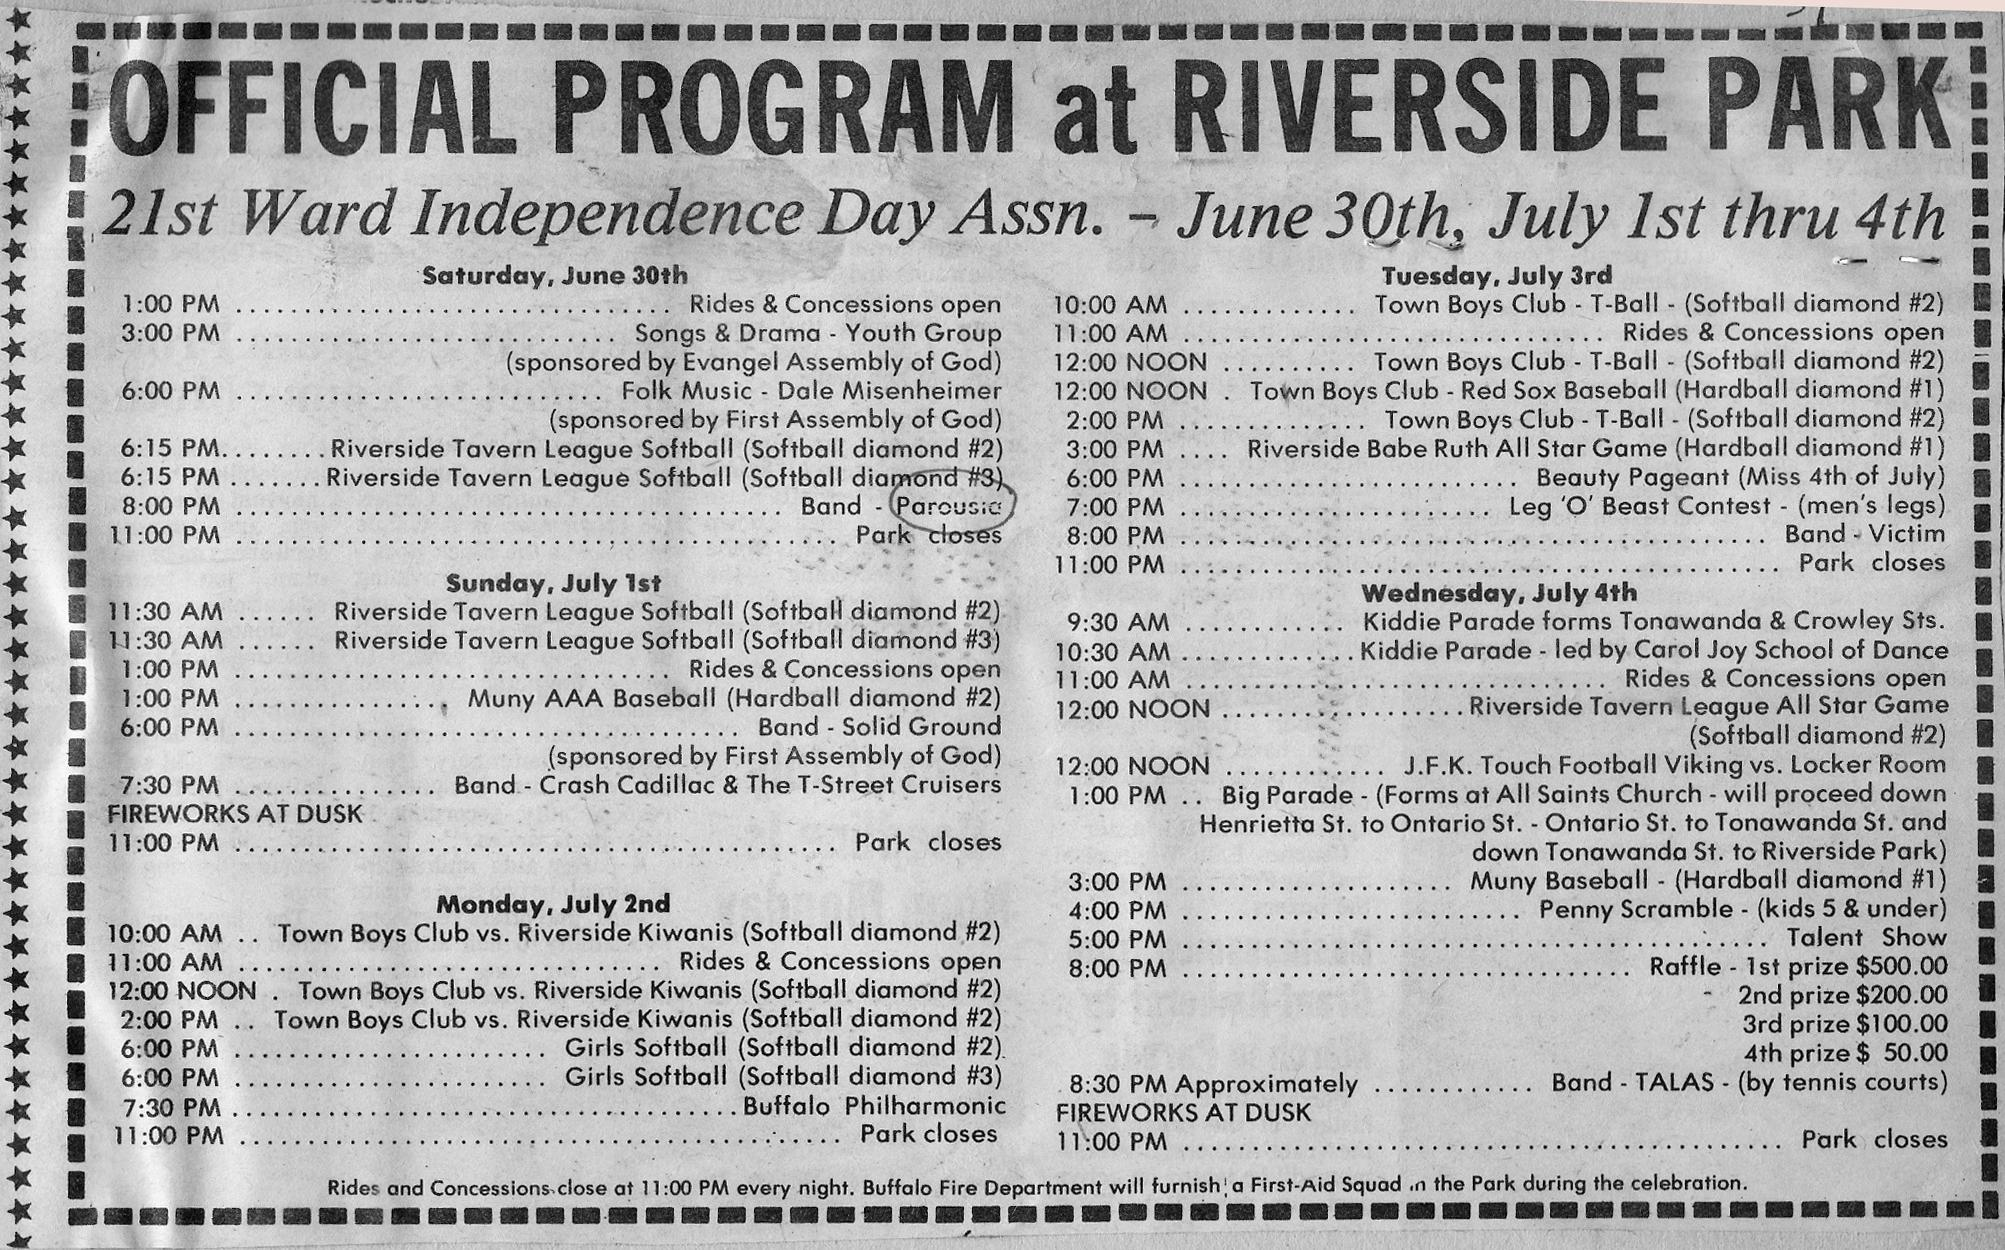 1984 Official 4th of July Program - Riverside Review